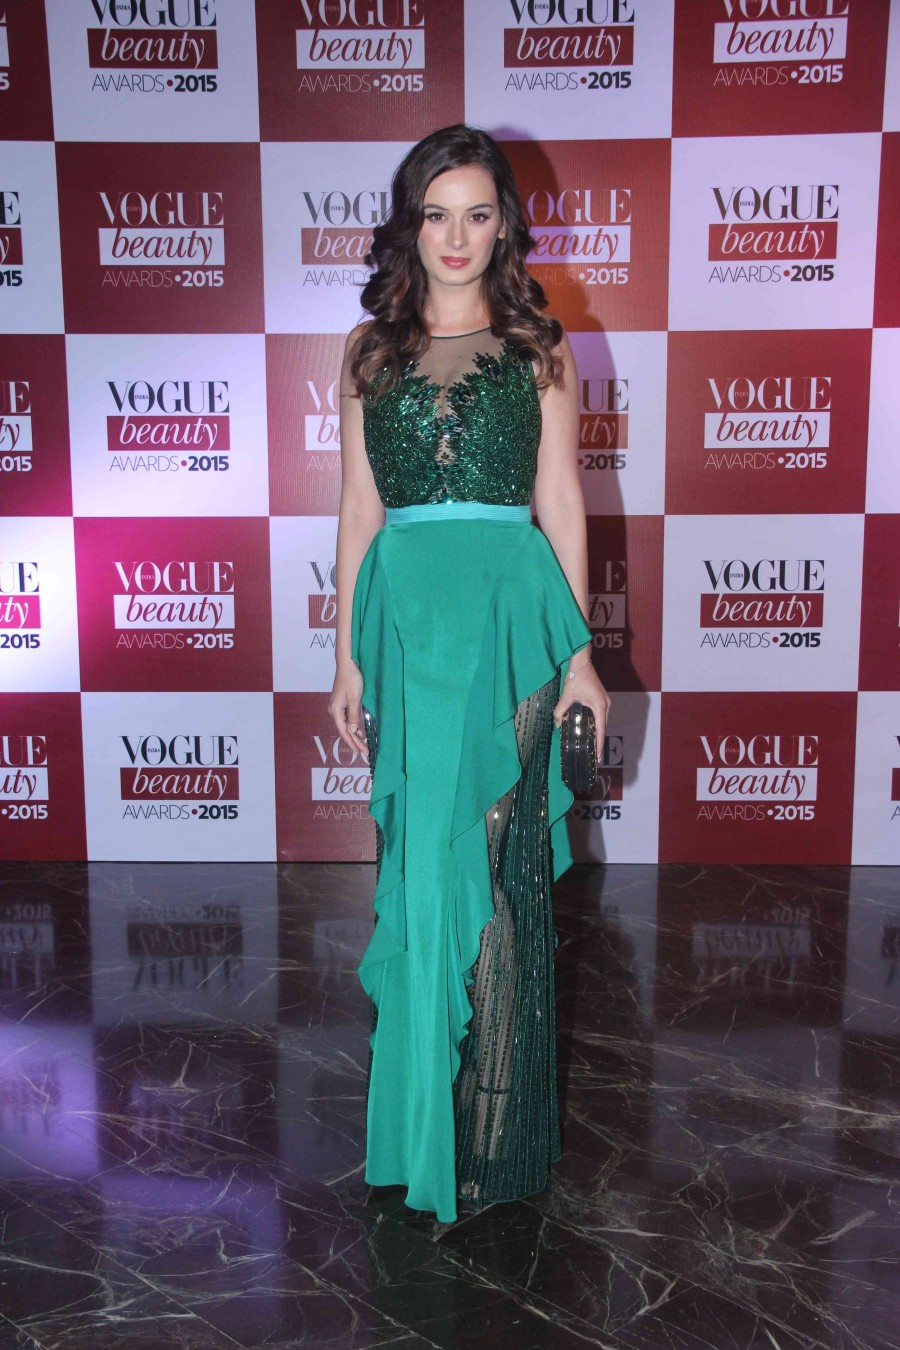 Vogue Beauty Awards 2015,Red Carpet,Vogue Beauty Awards Red Carpet,Fawad Khan,anushka sharma,jackky bhagnani,Rani Mukherji,neha dhupia,athiya shetty,bollywood awards,award ceremony,Vogue,photos